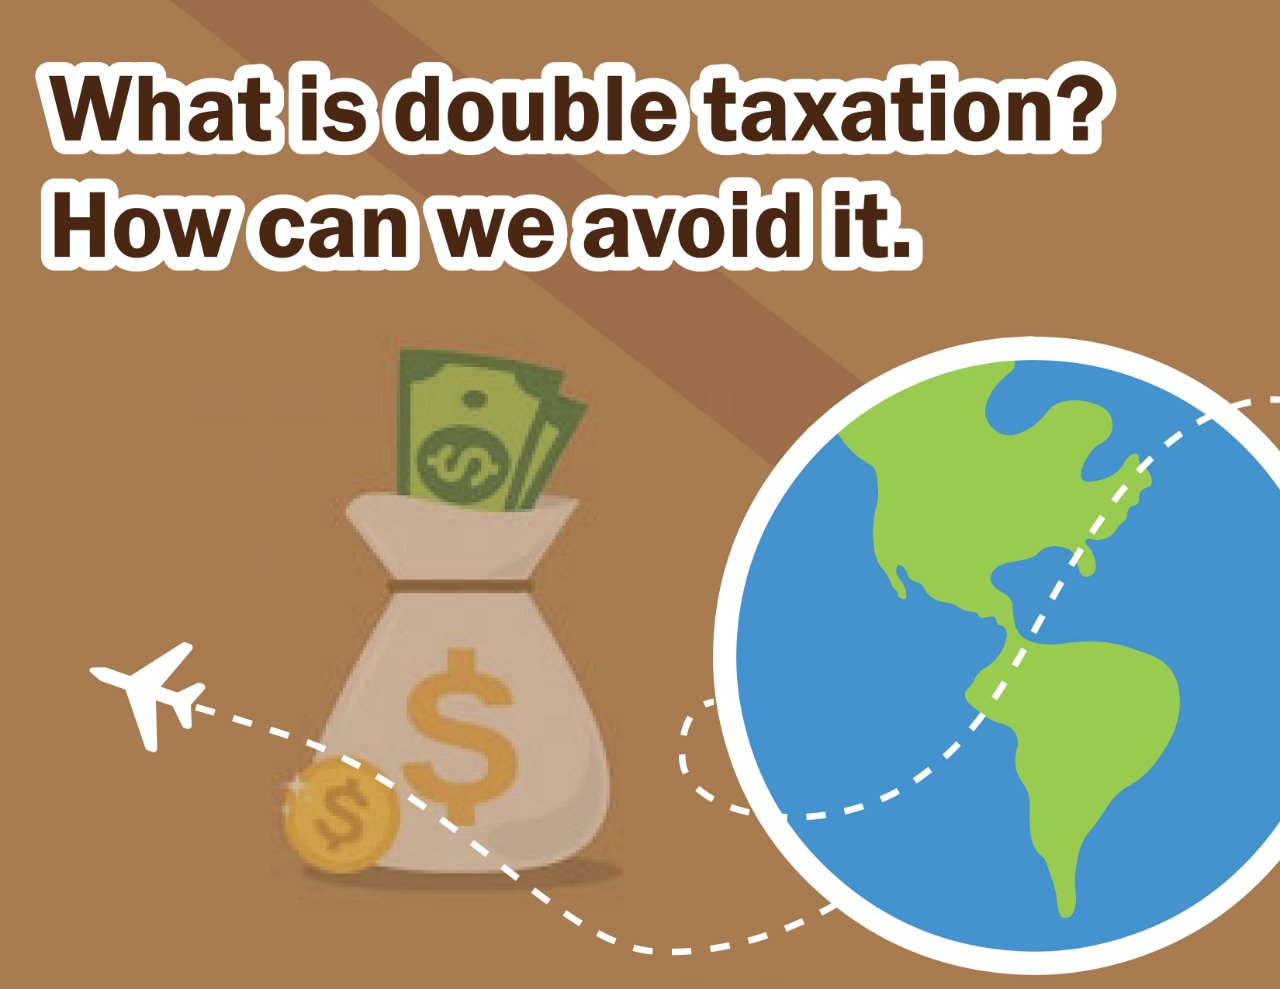 How Can We Avoid Double Taxation